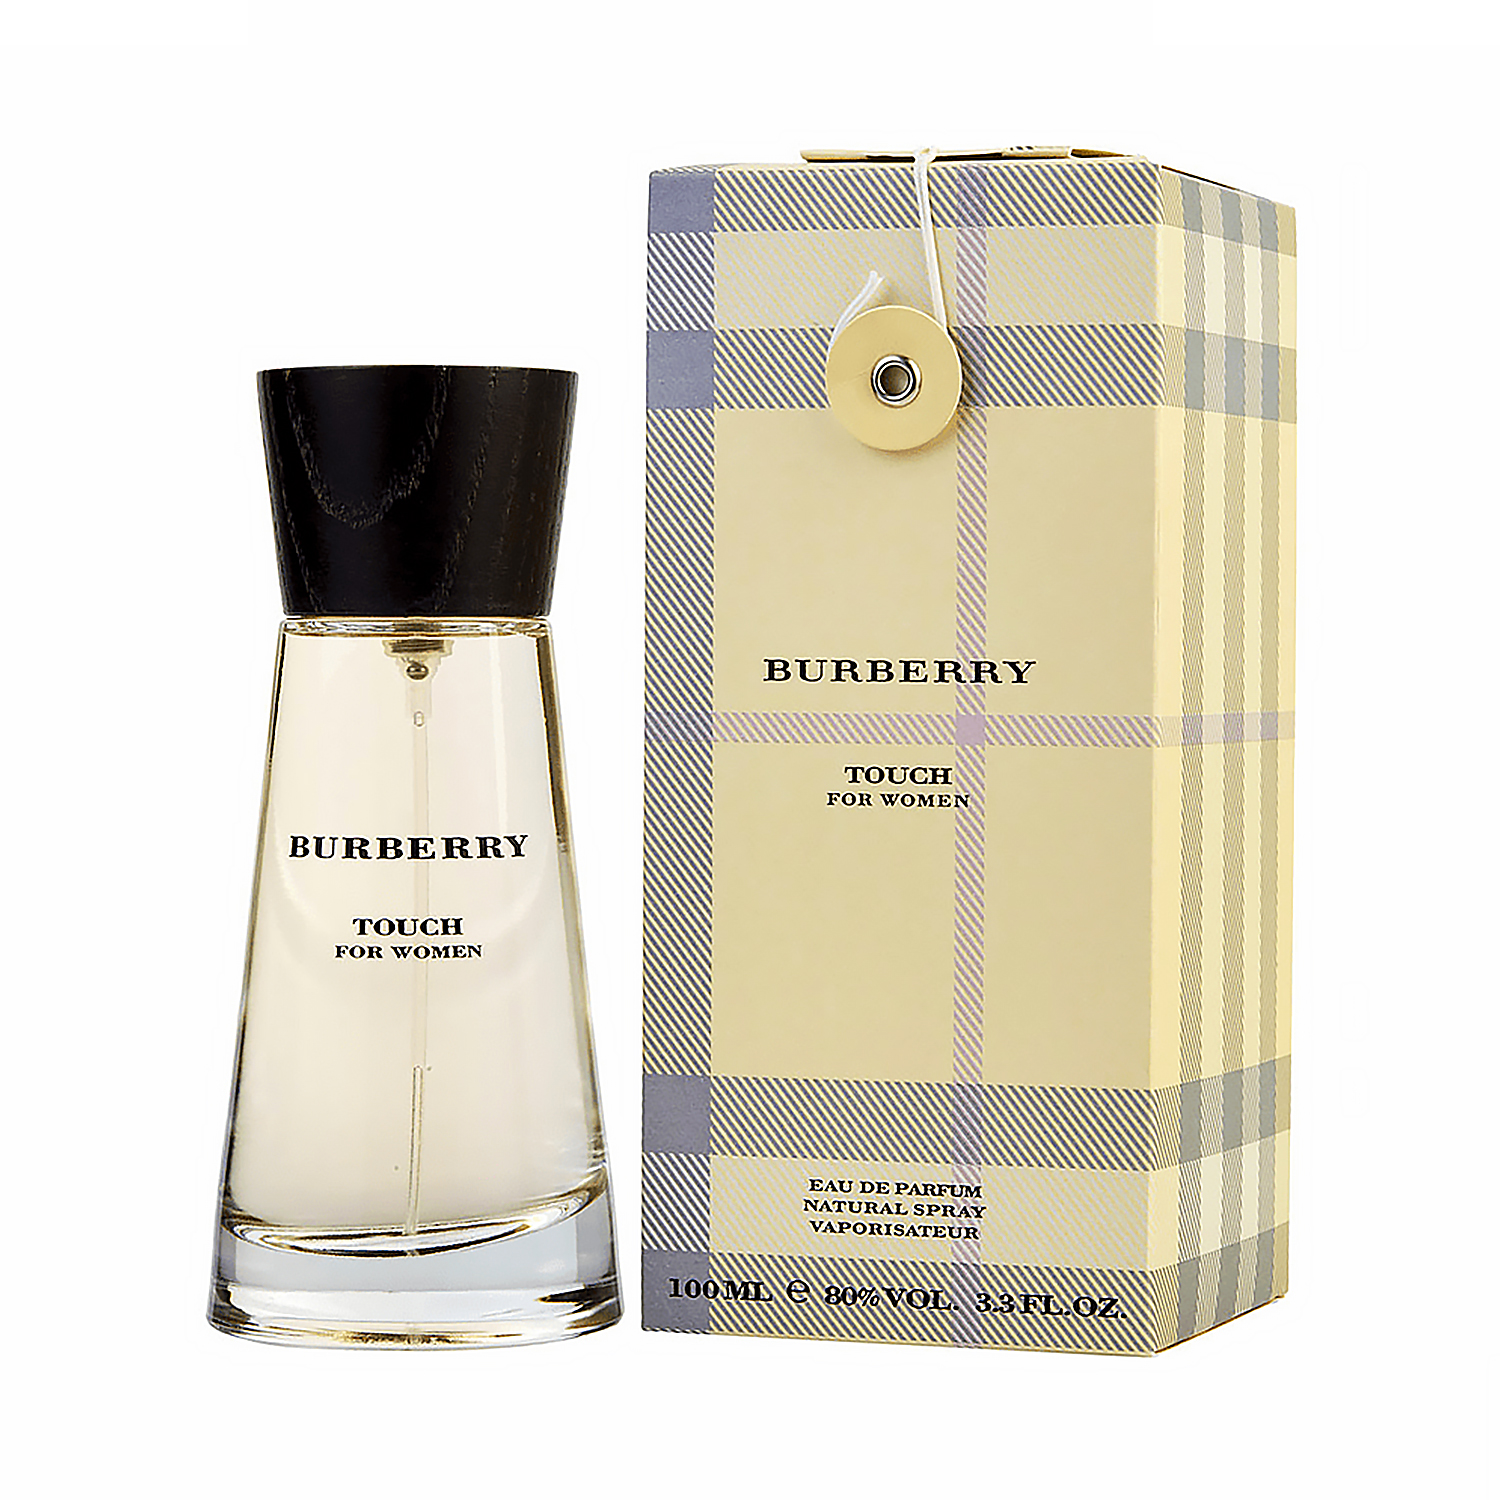 Touch by burberry For Women EDT: Birthday Gift Ideas